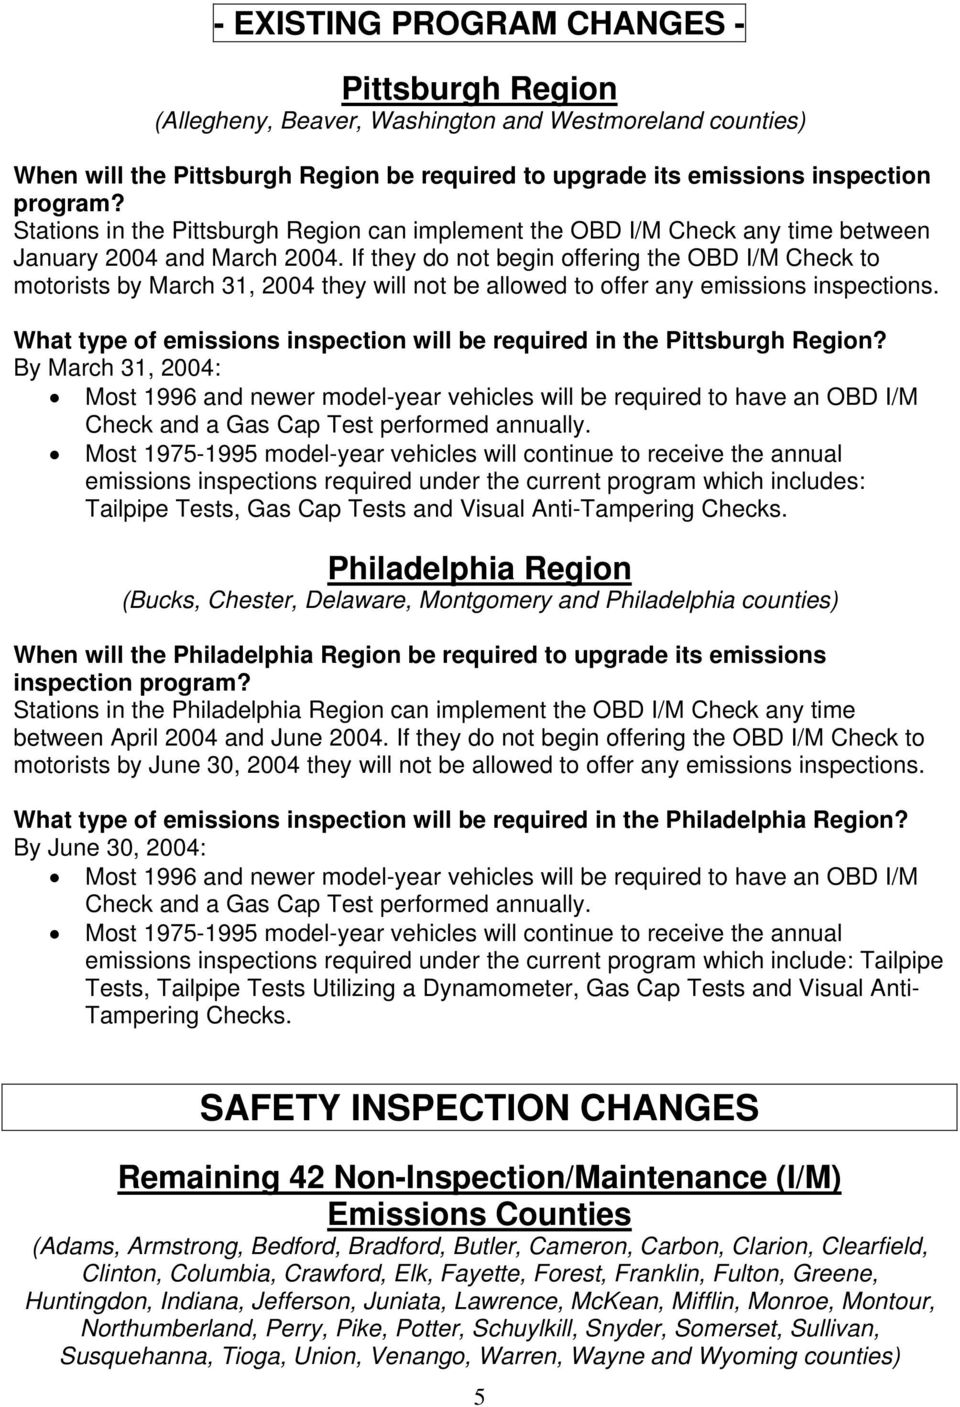 If they do not begin offering the OBD I/M Check to motorists by March 31, 2004 they will not be allowed to offer any emissions inspections.